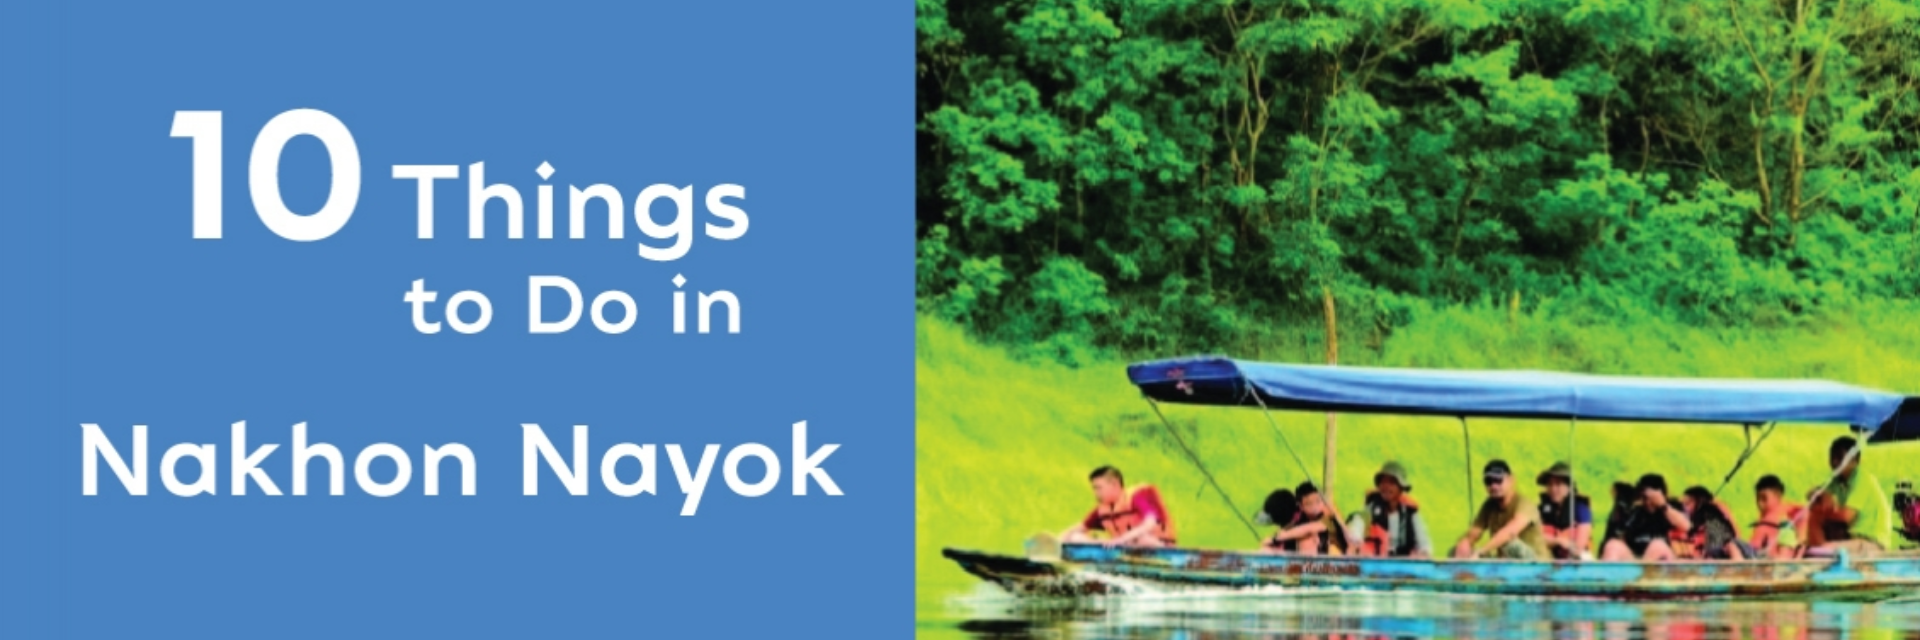 10 THINGS TO DO IN NAKHON NAYOK